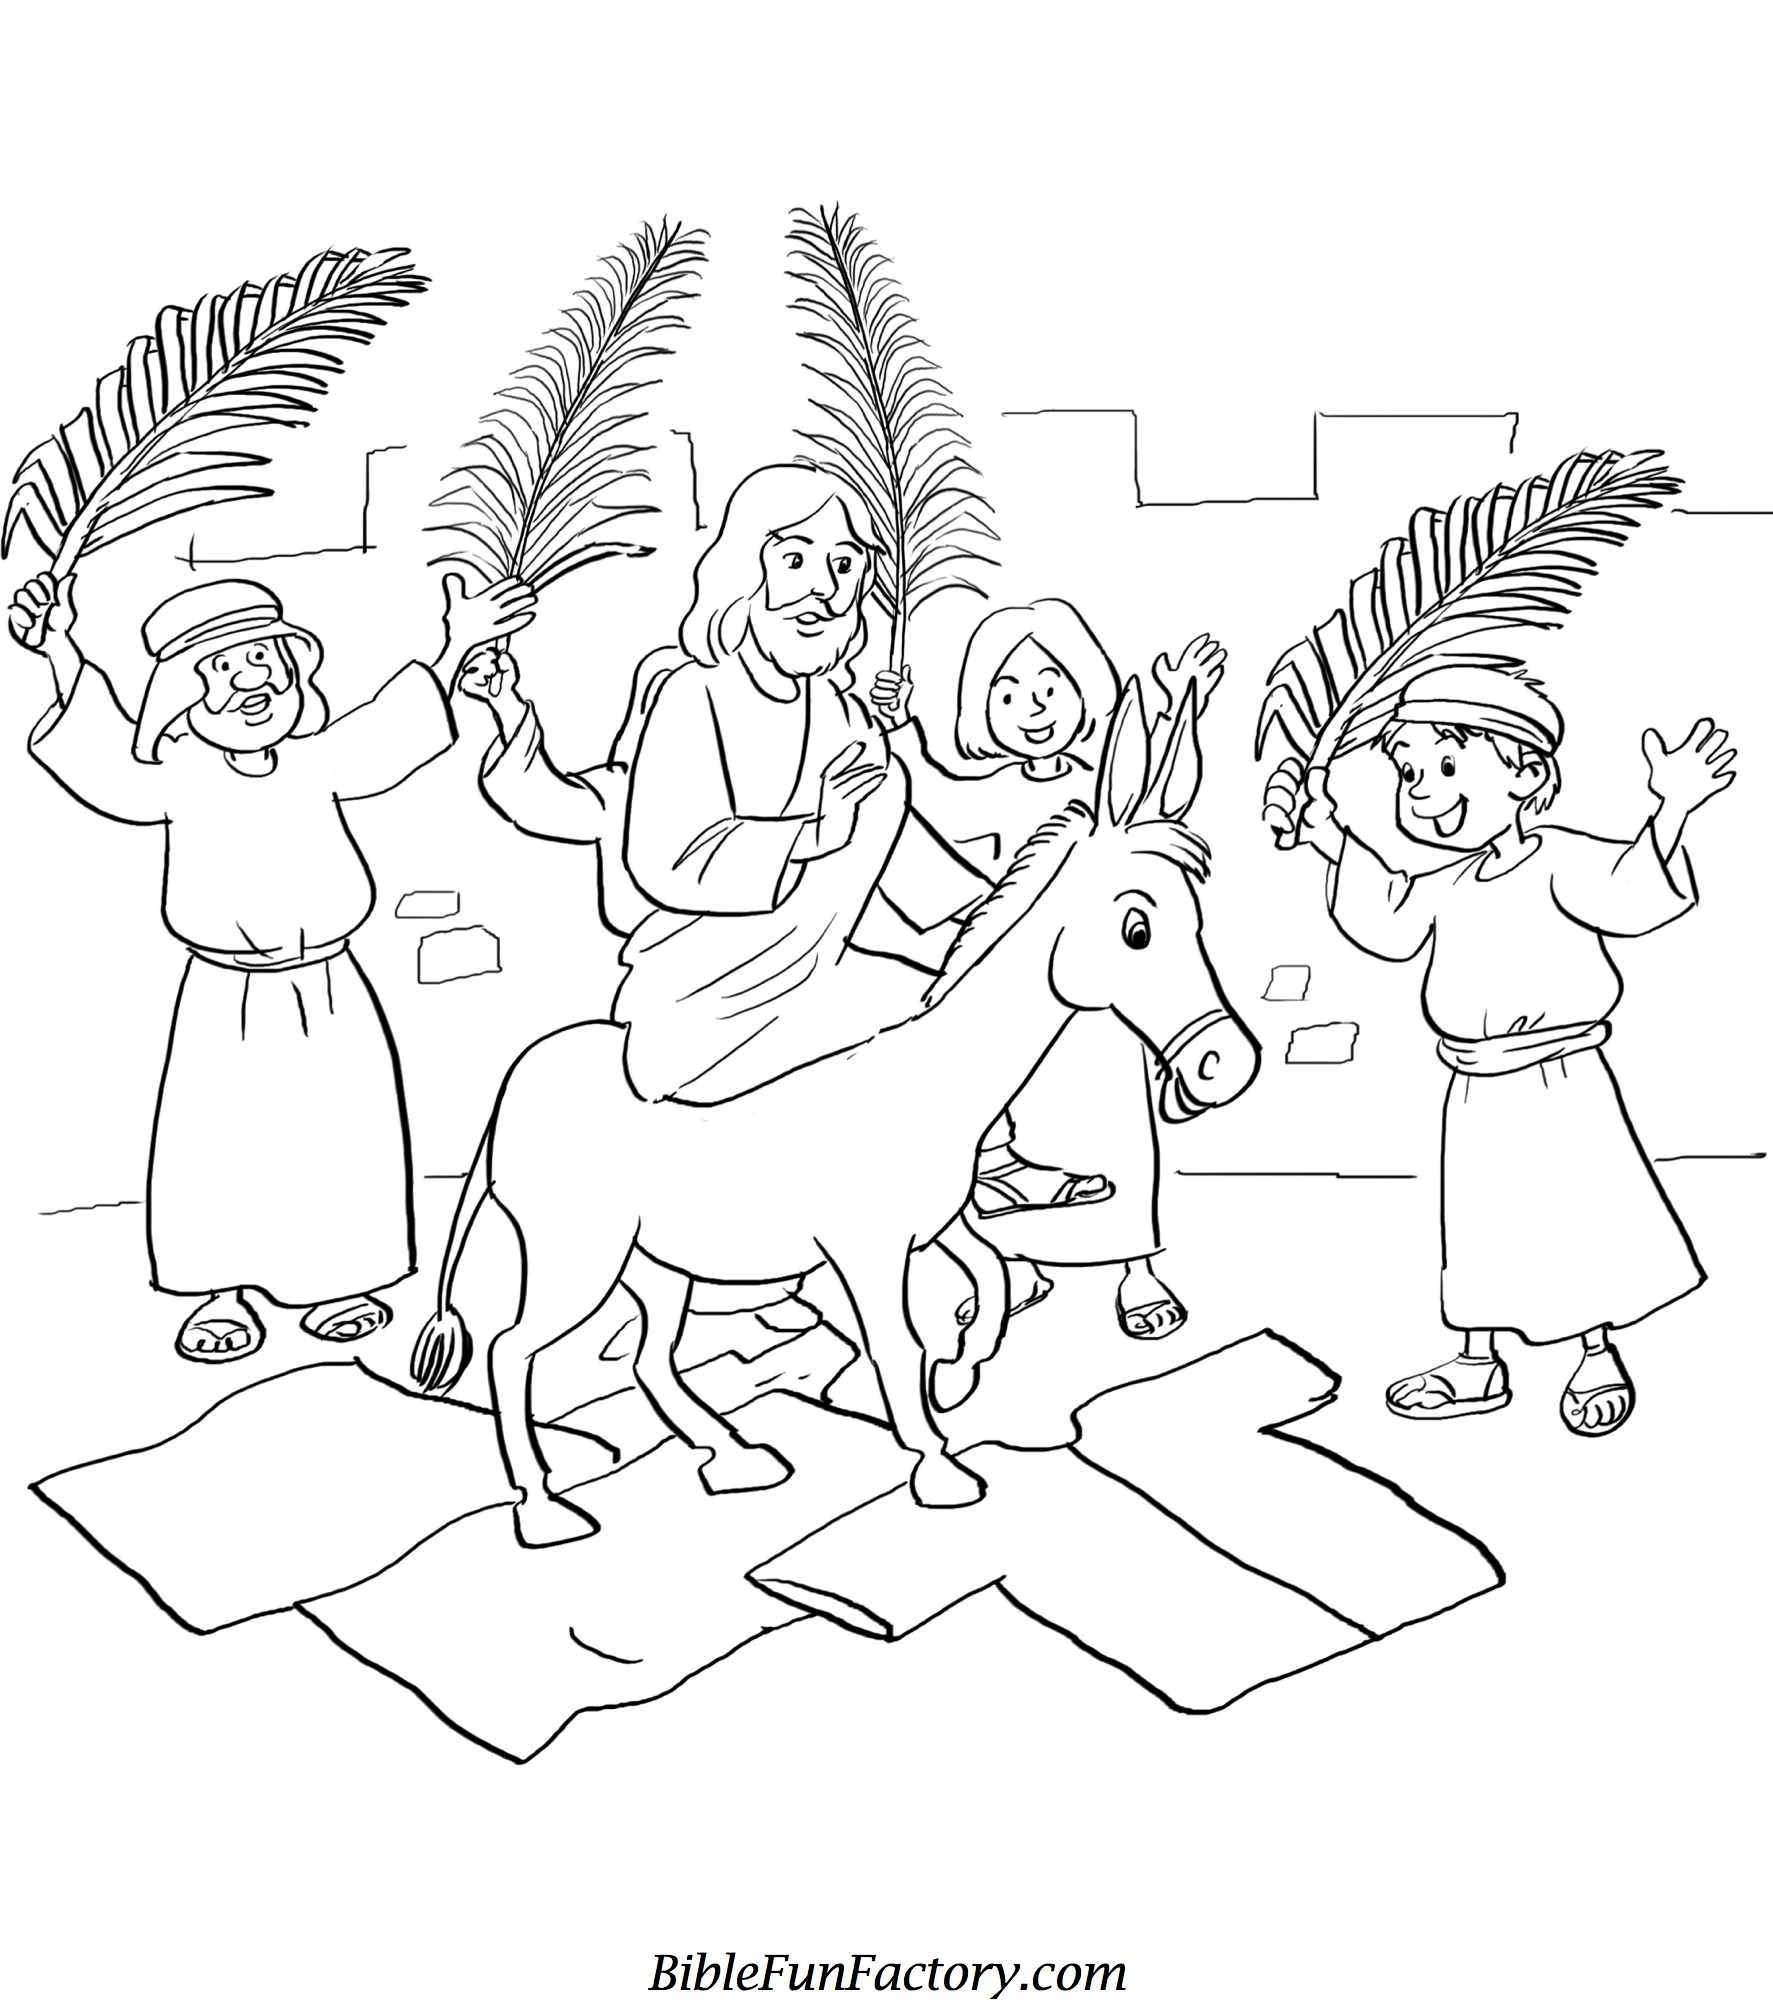 sunday school coloring pages easter Download-Free printable easter bible coloring pages with palm sunday sheets easter bible coloring pages 1773x2000 1-i